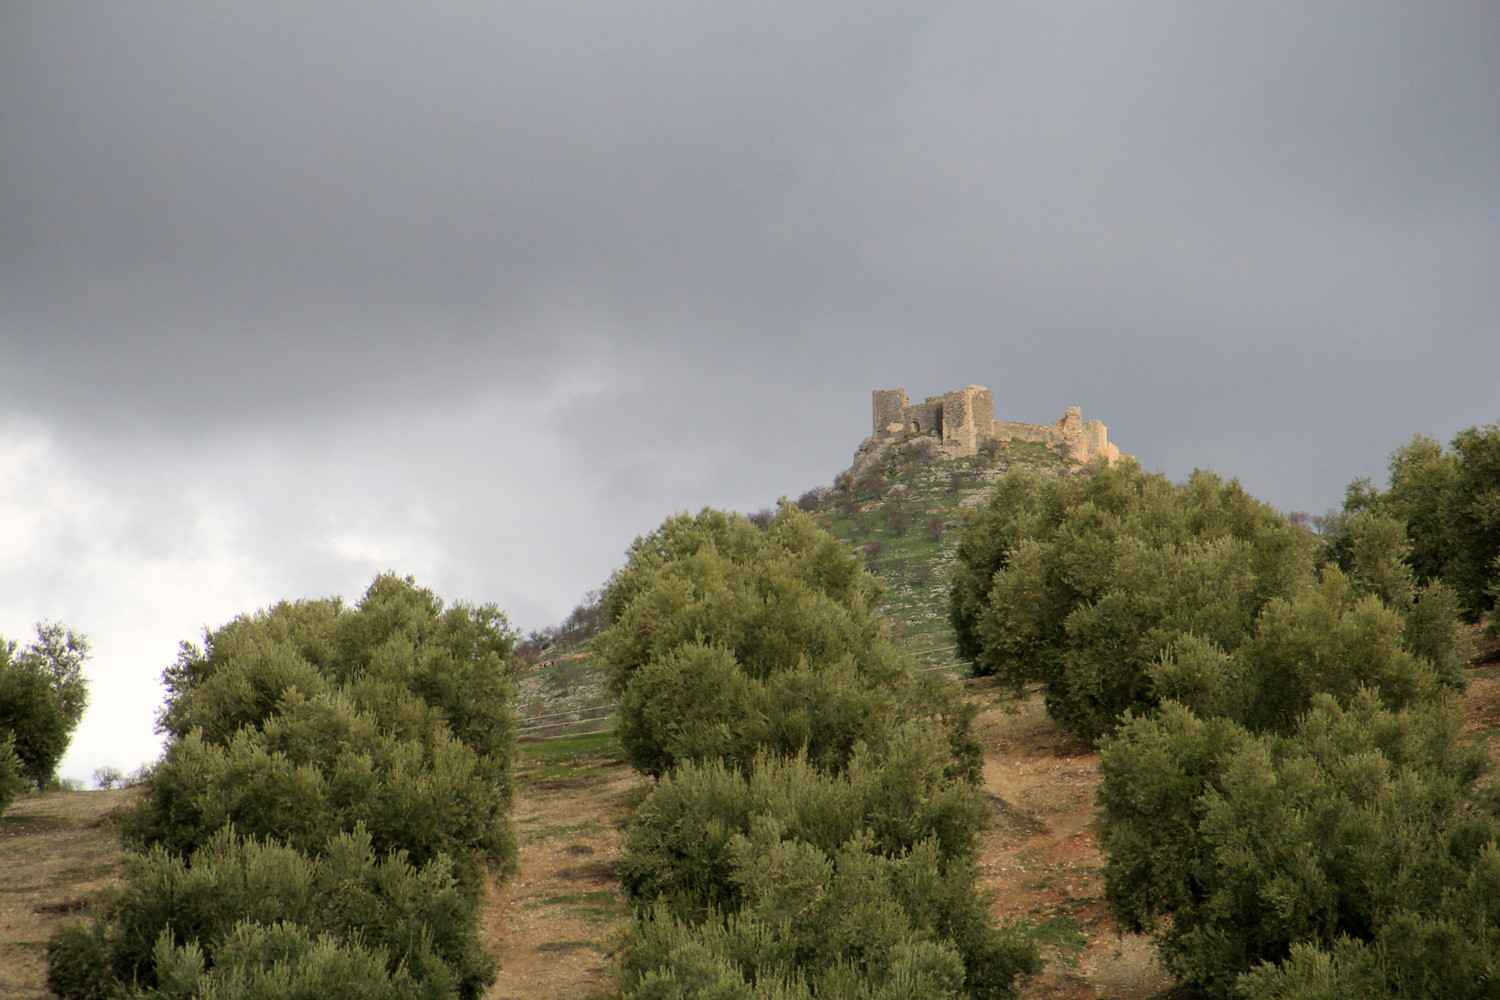 The Castle Ruins of Piñar